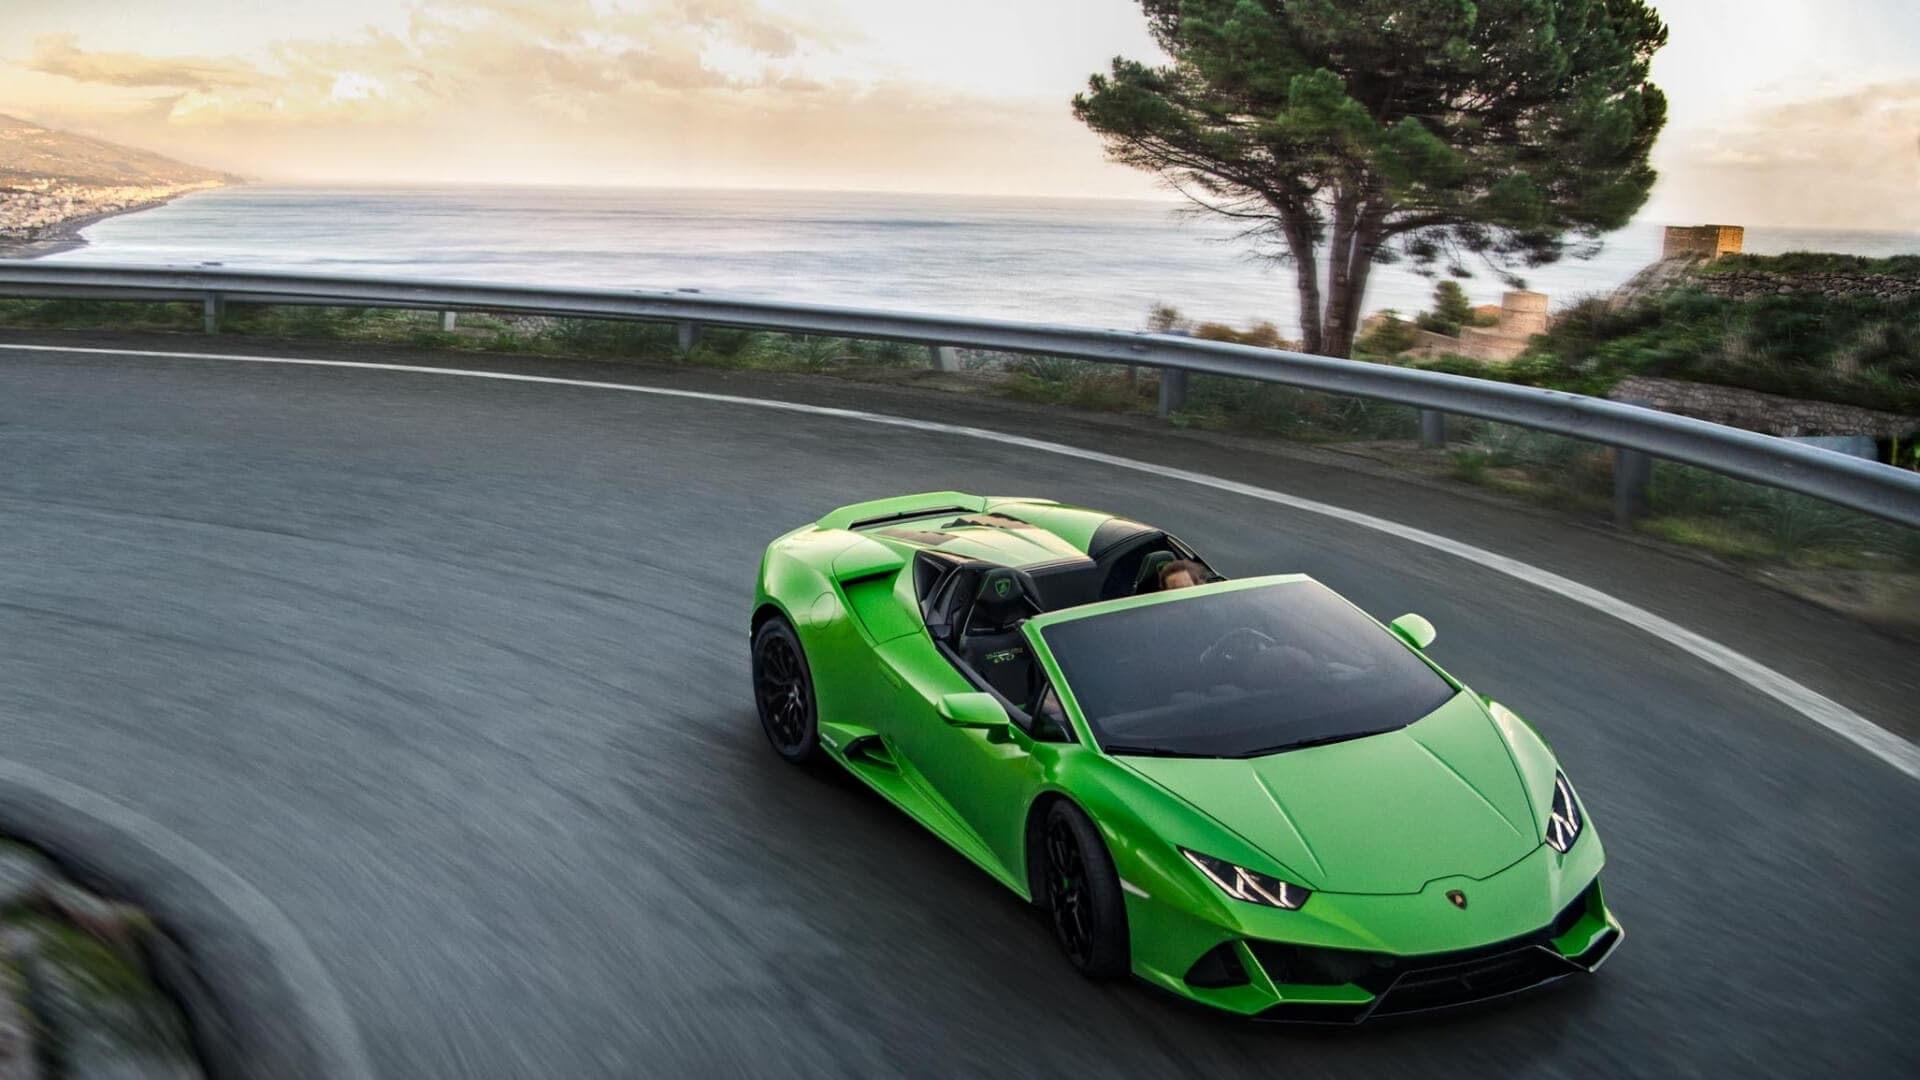 lamborghini huracán technical specifications, pictures, videos  labeled diagram lambo #9